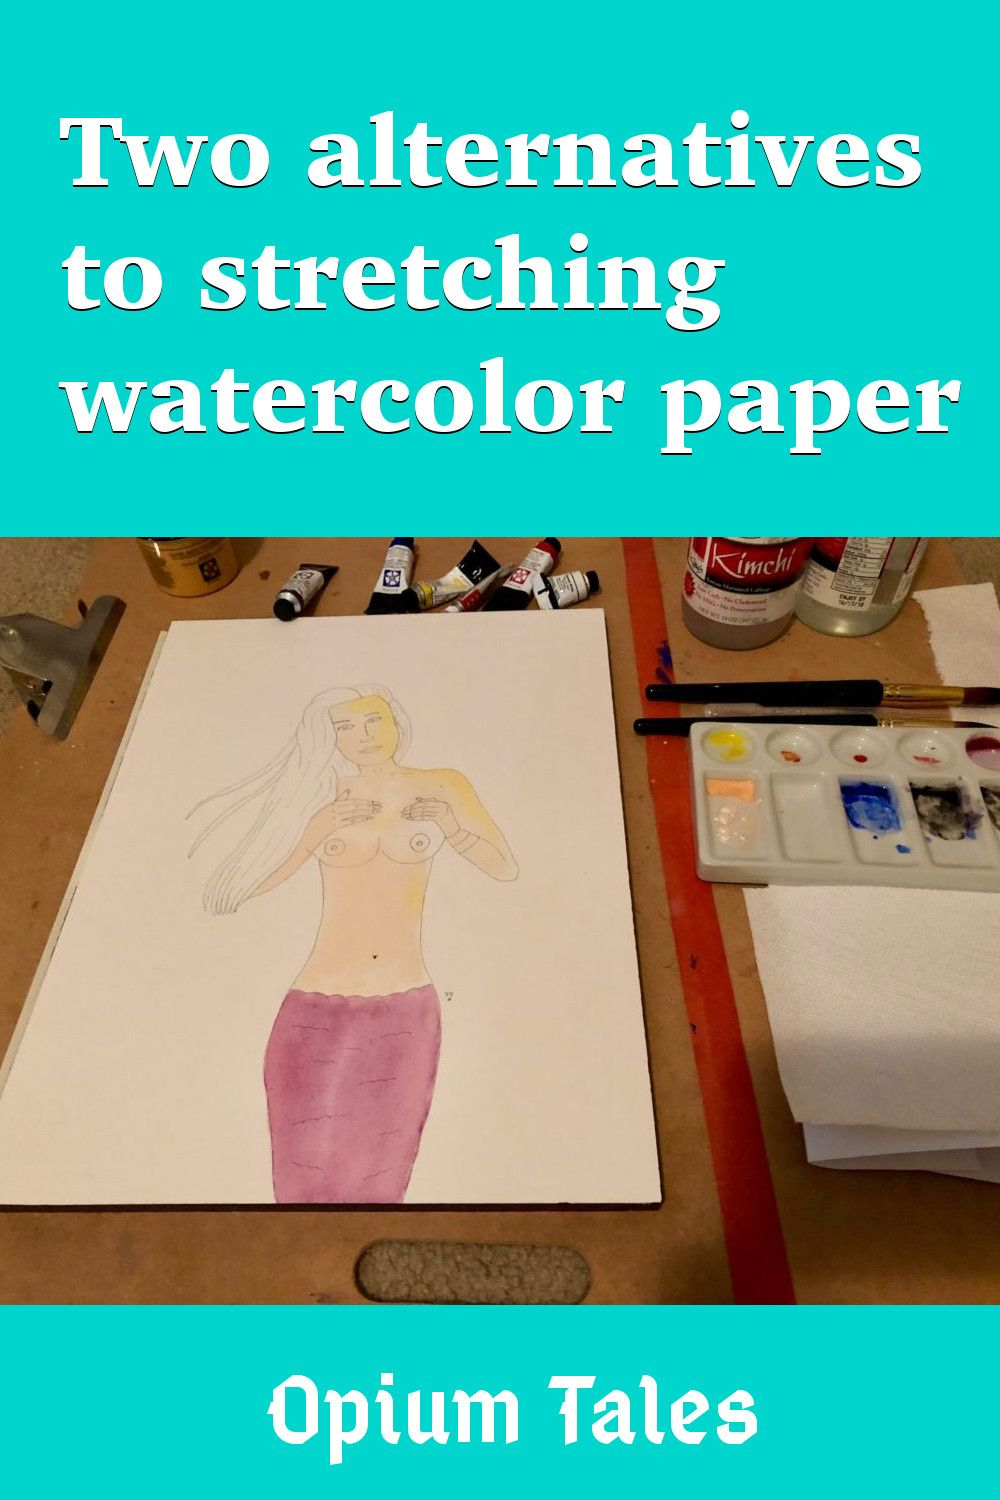 Two alternatives to stretching watercolor paper